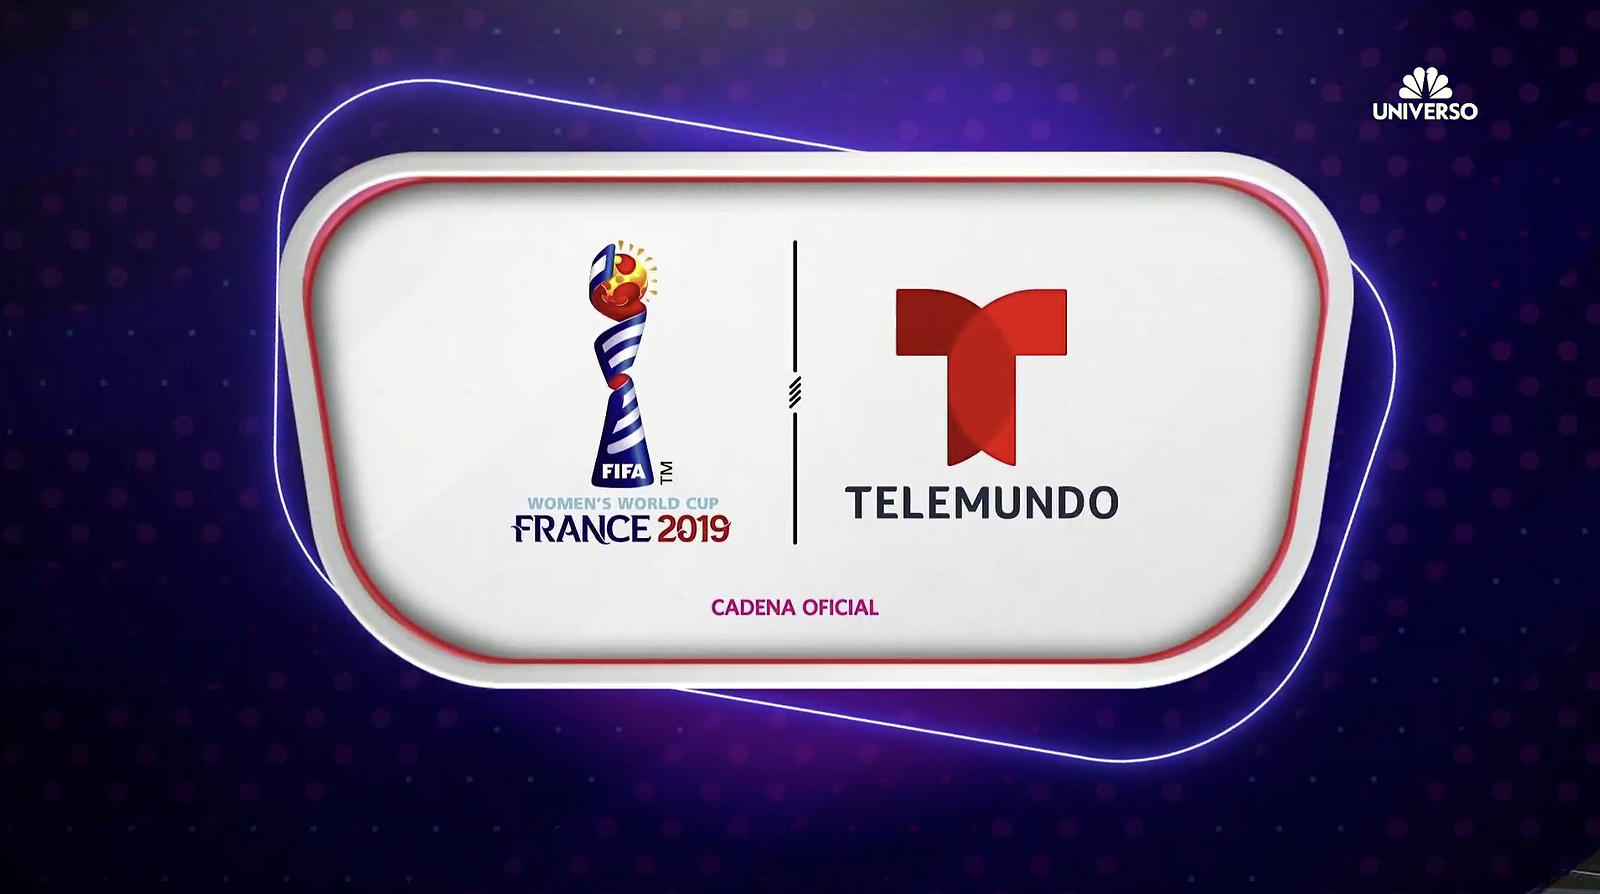 NCS_Telemundo-FIFA-Womens-World-Cup-2019_GFX_0001